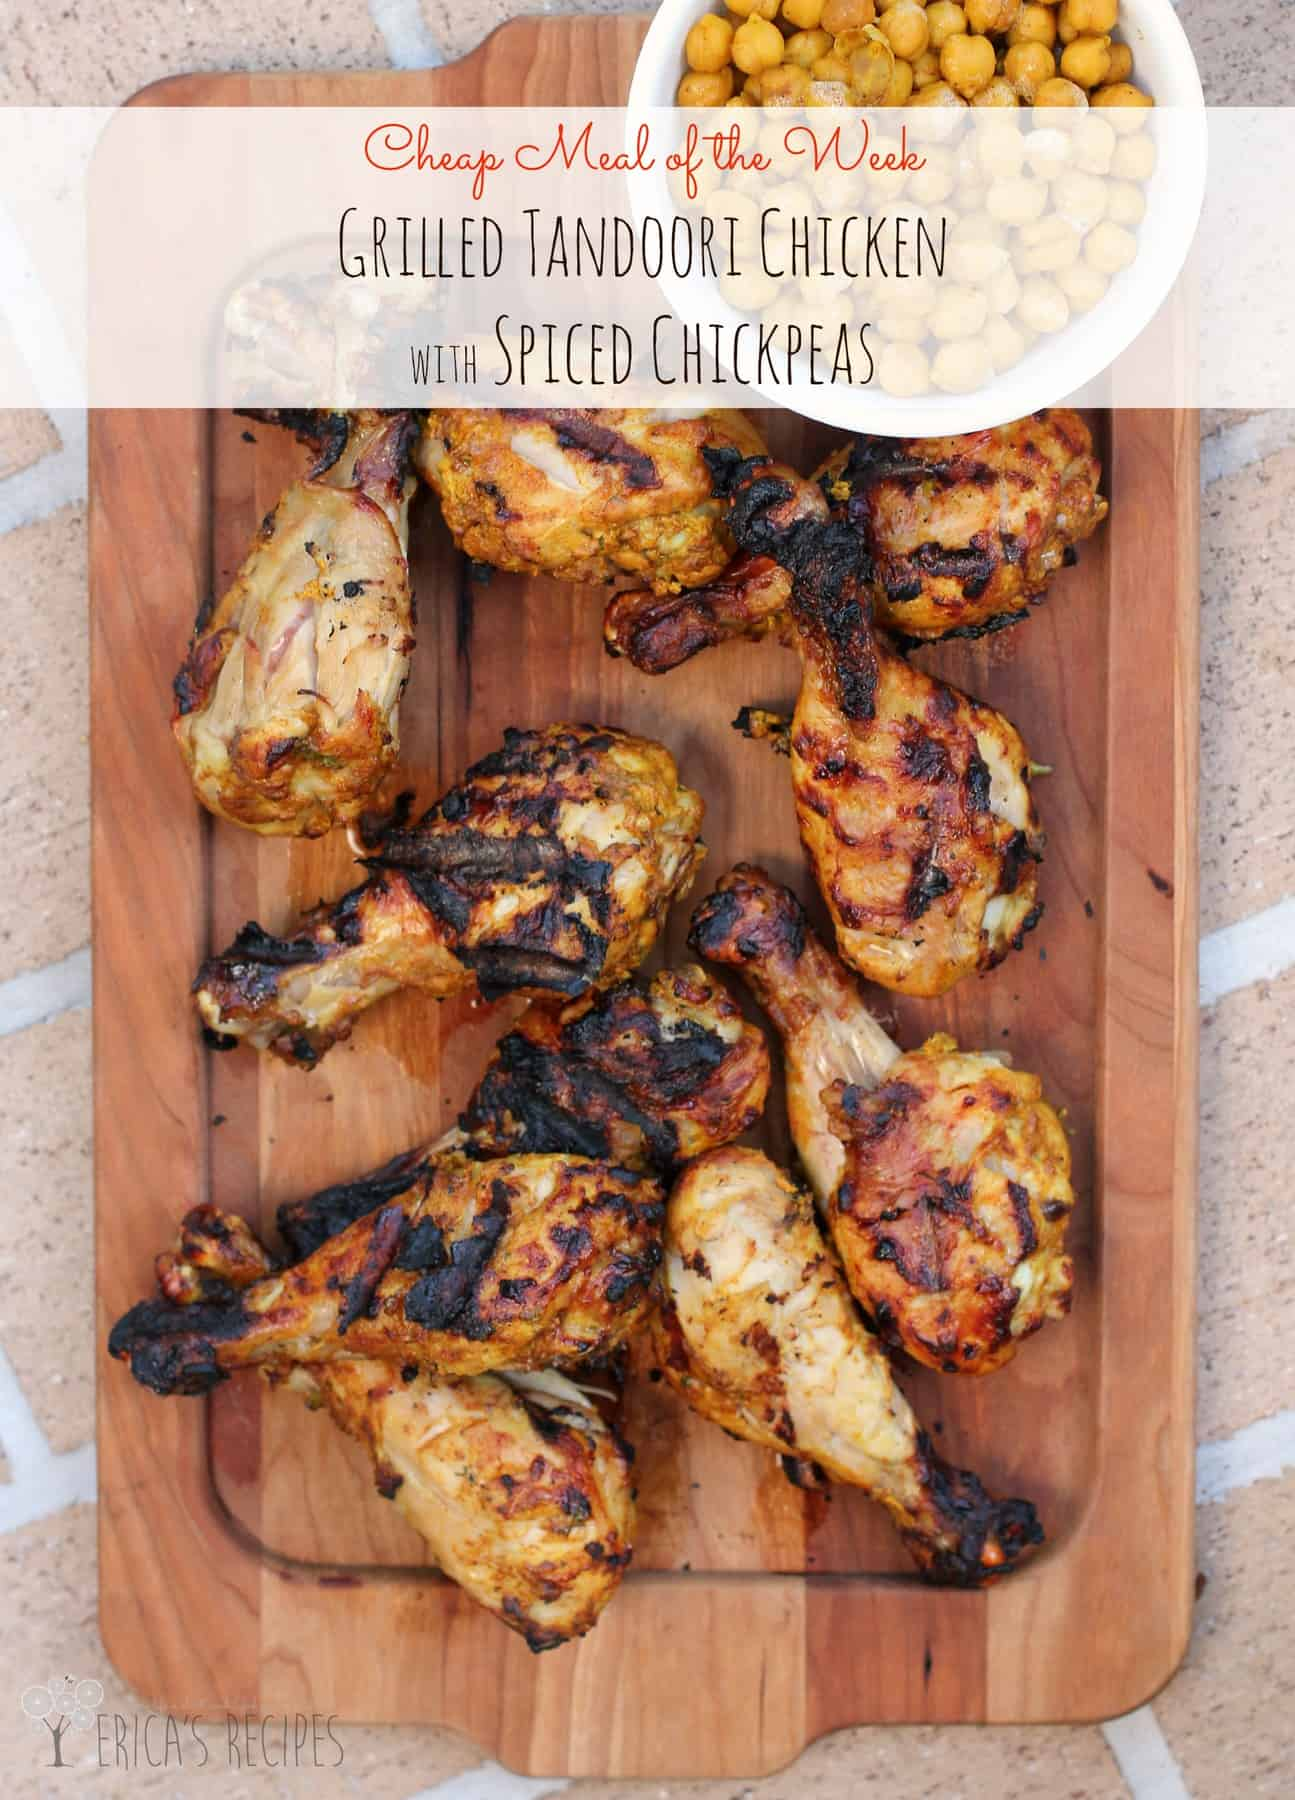 Grilled Tandoori Chicken with Spiced Chickpeas #recipe #grill #budgetfriendly #familydinner #chicken